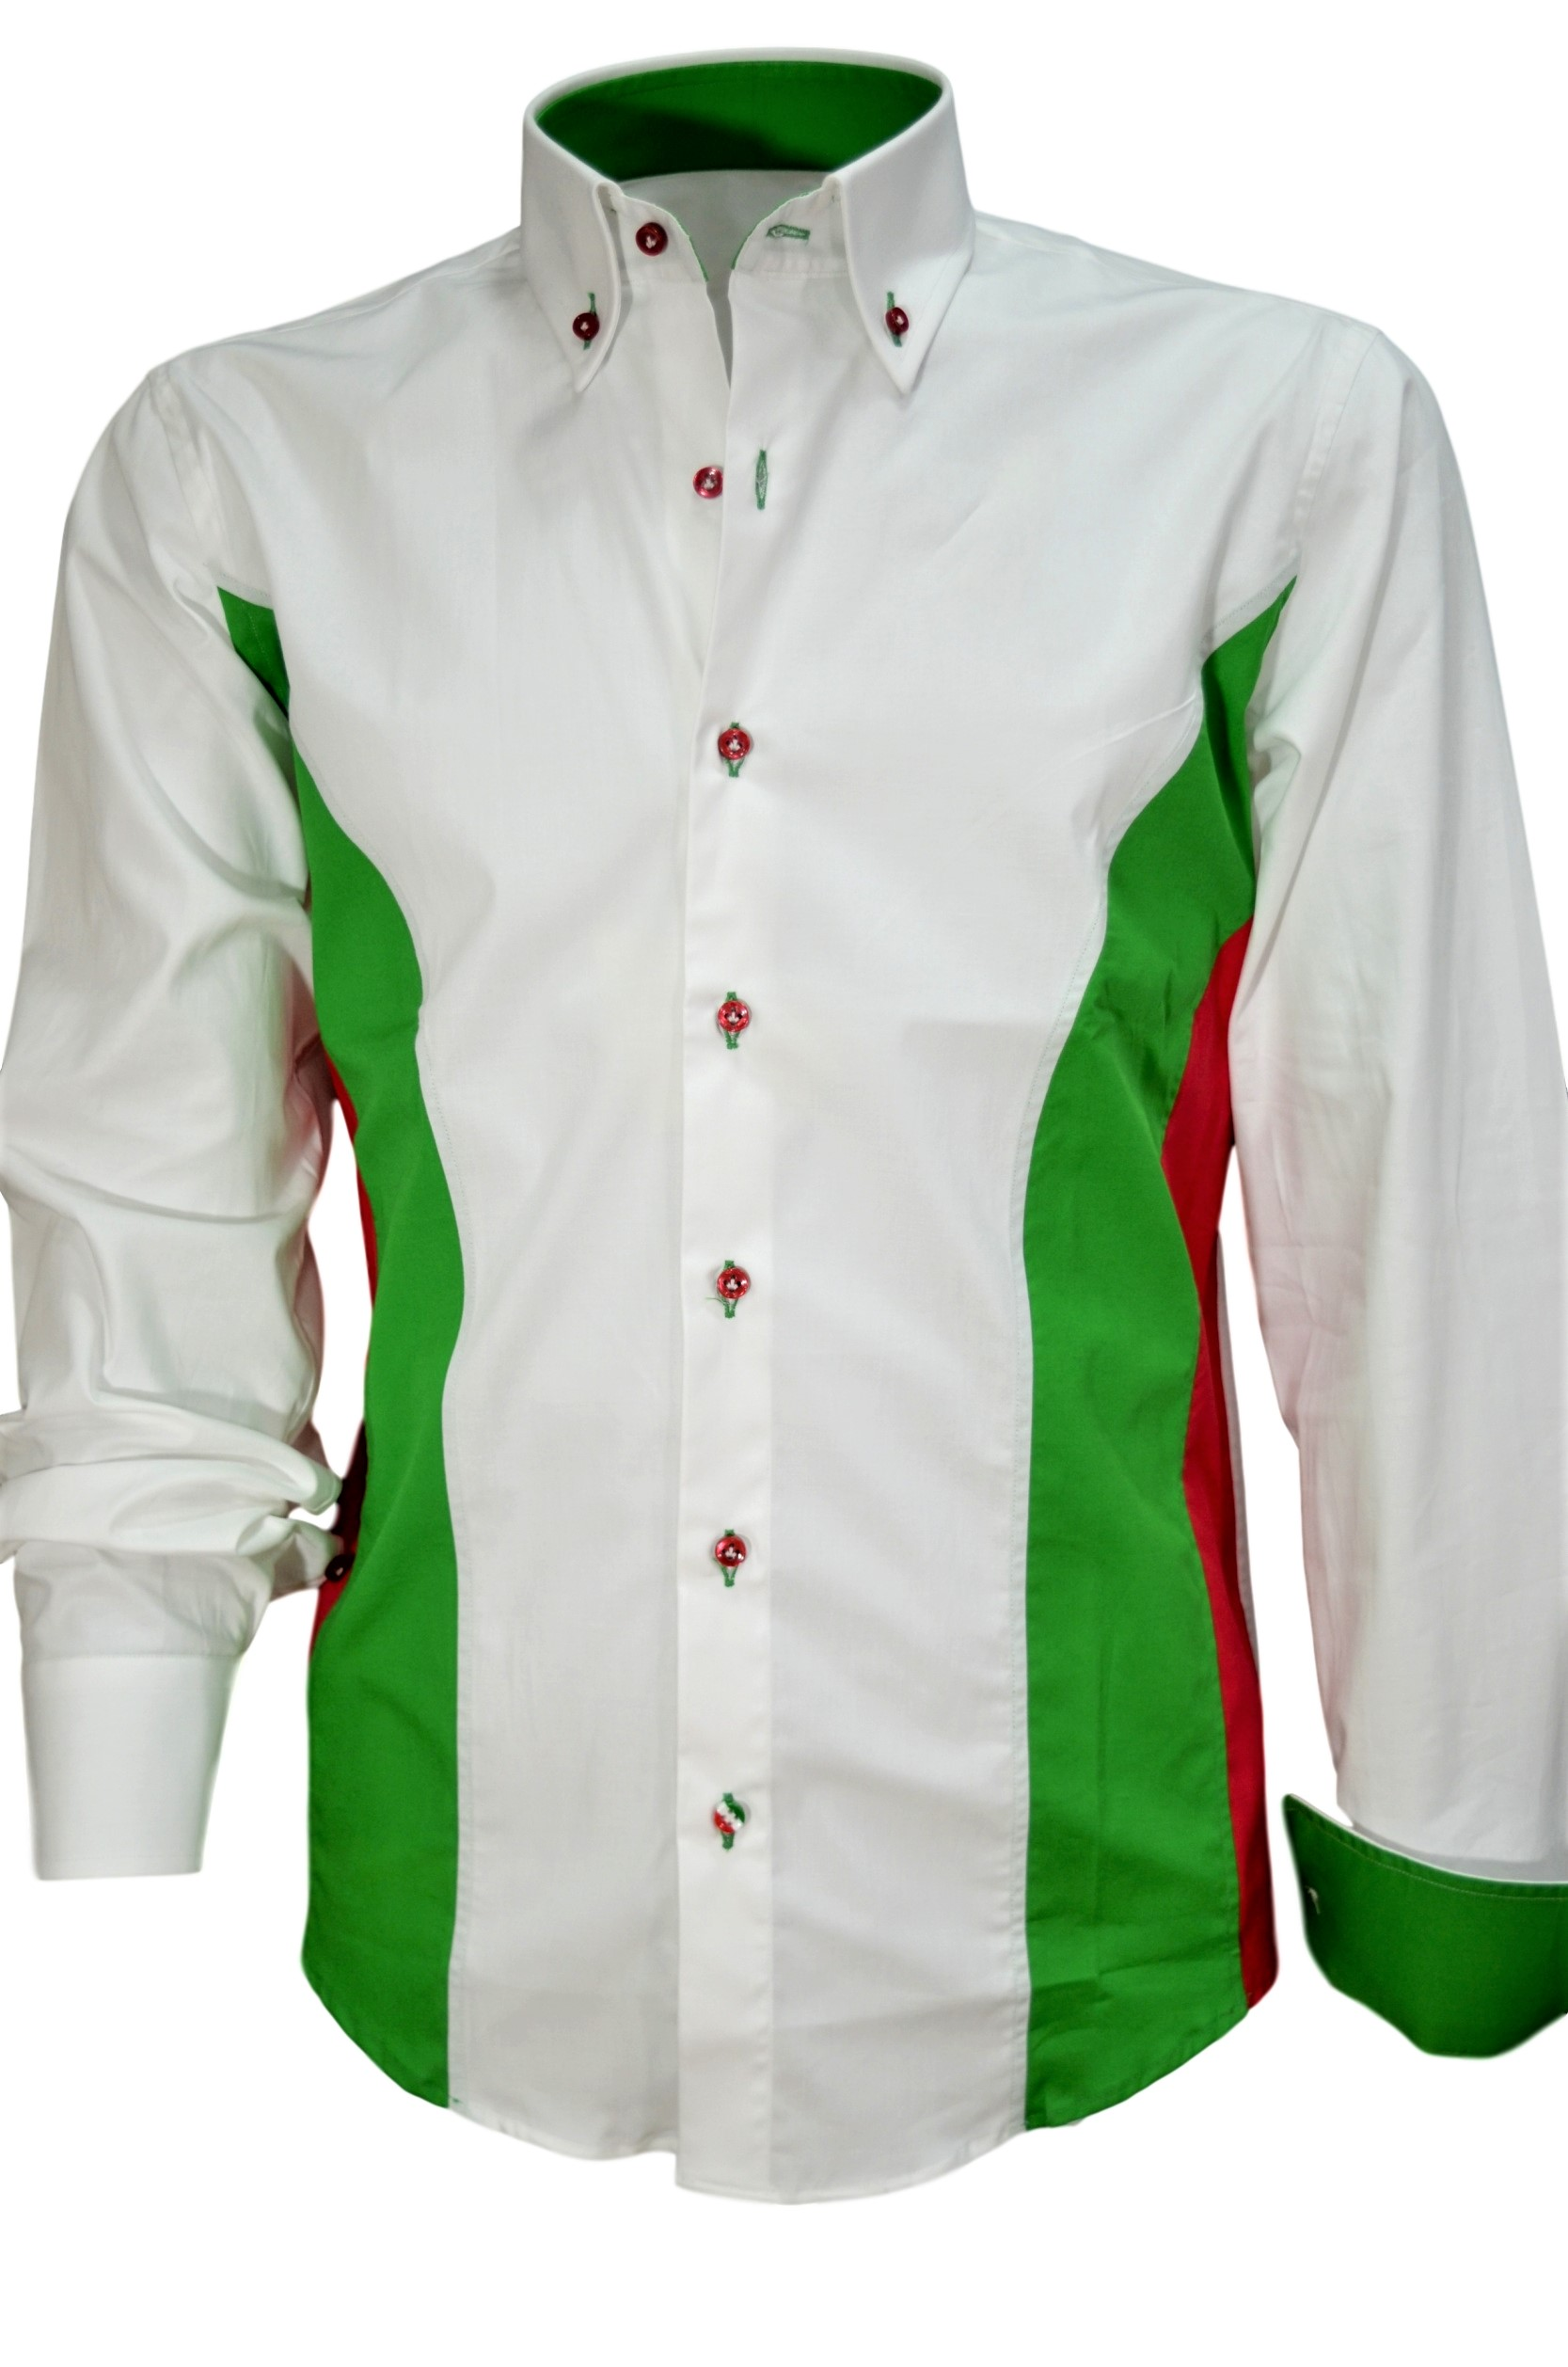 AMELIASTELLA FASHION CAMICIA UOMO SLIM FIT TRICOLORE ITALIA COTONE STRETCH